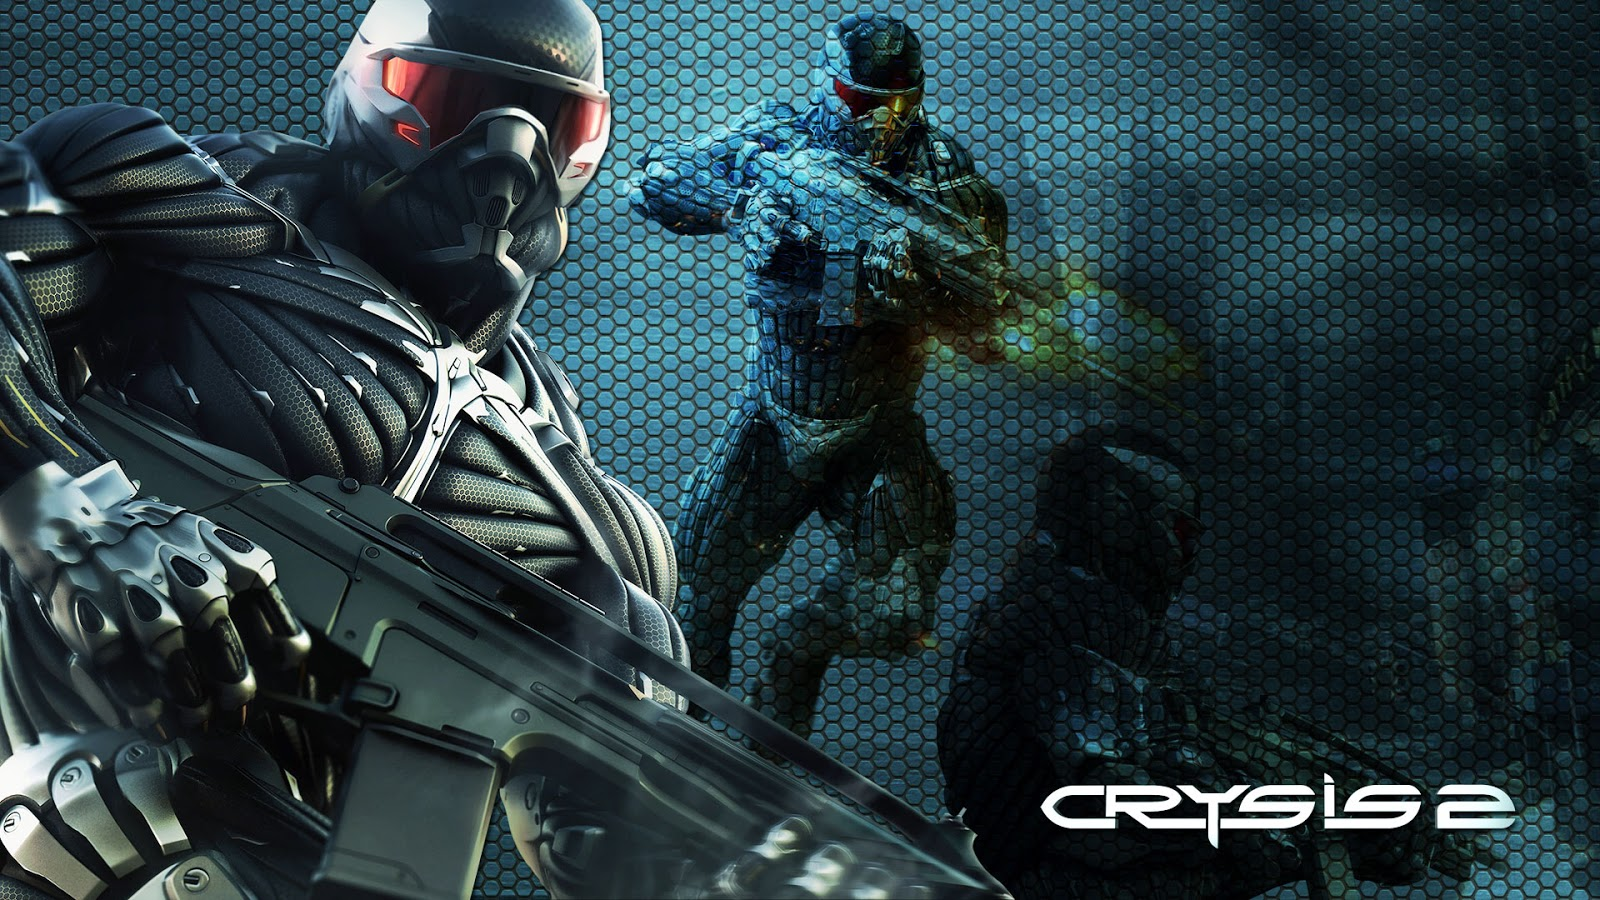 crysis 4 wallpaper hd-#25